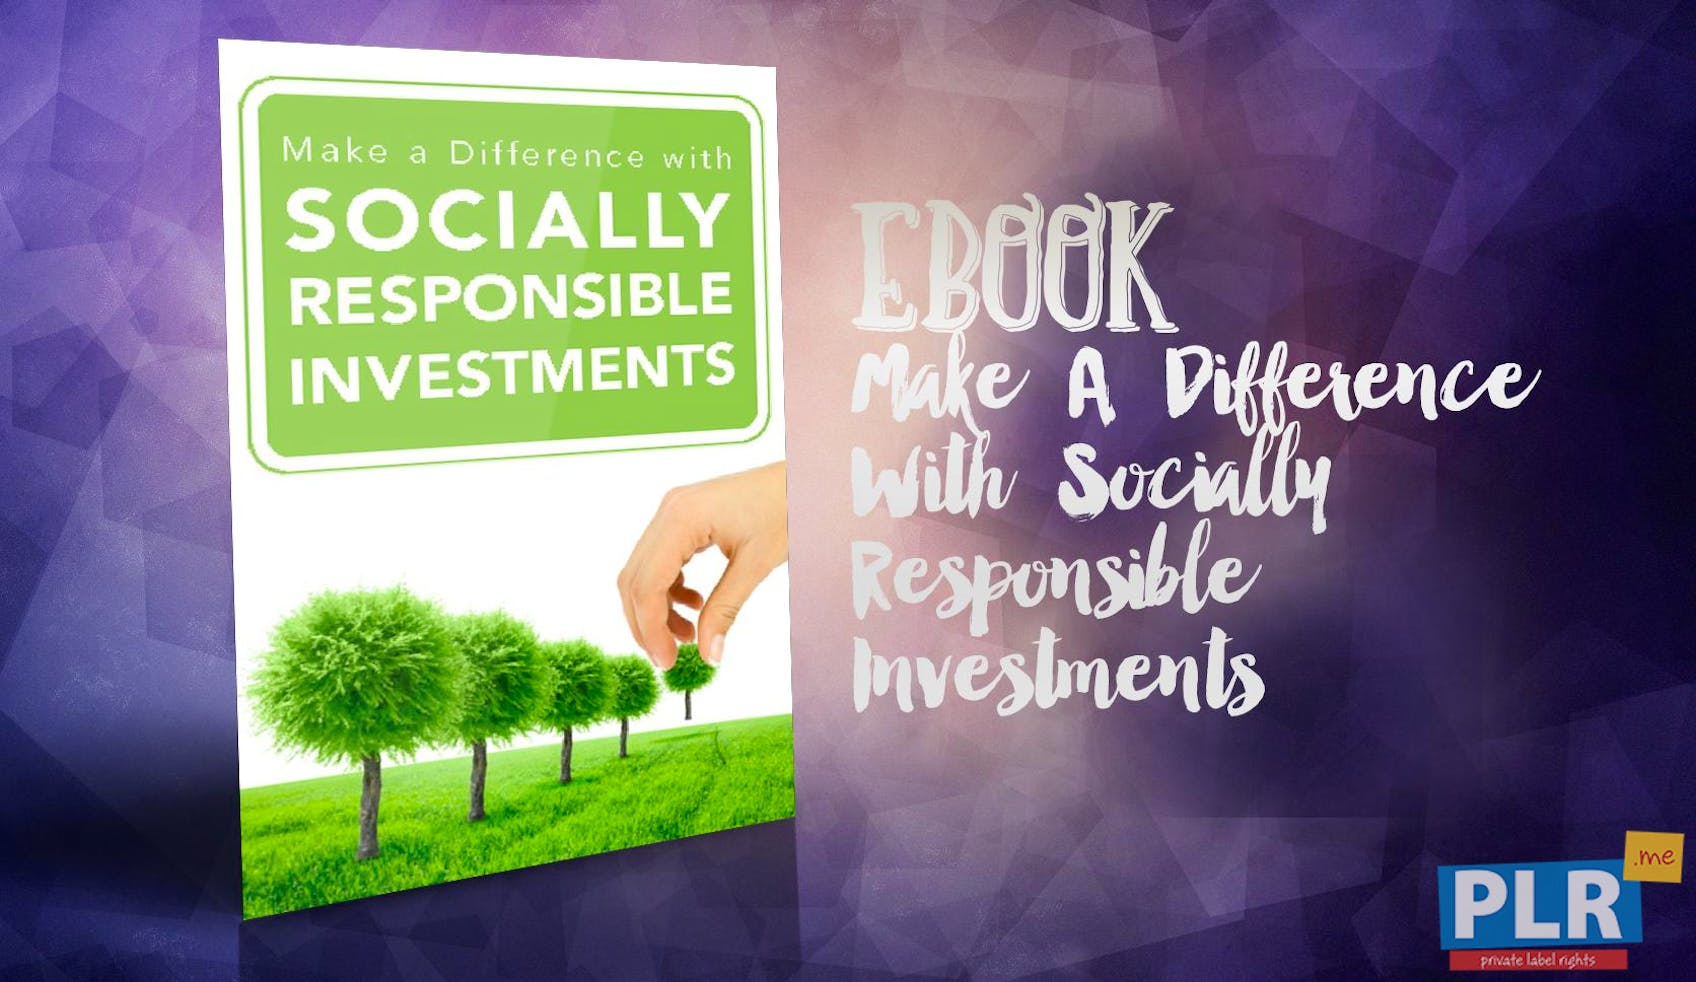 Make A Difference With Socially Responsible Investments